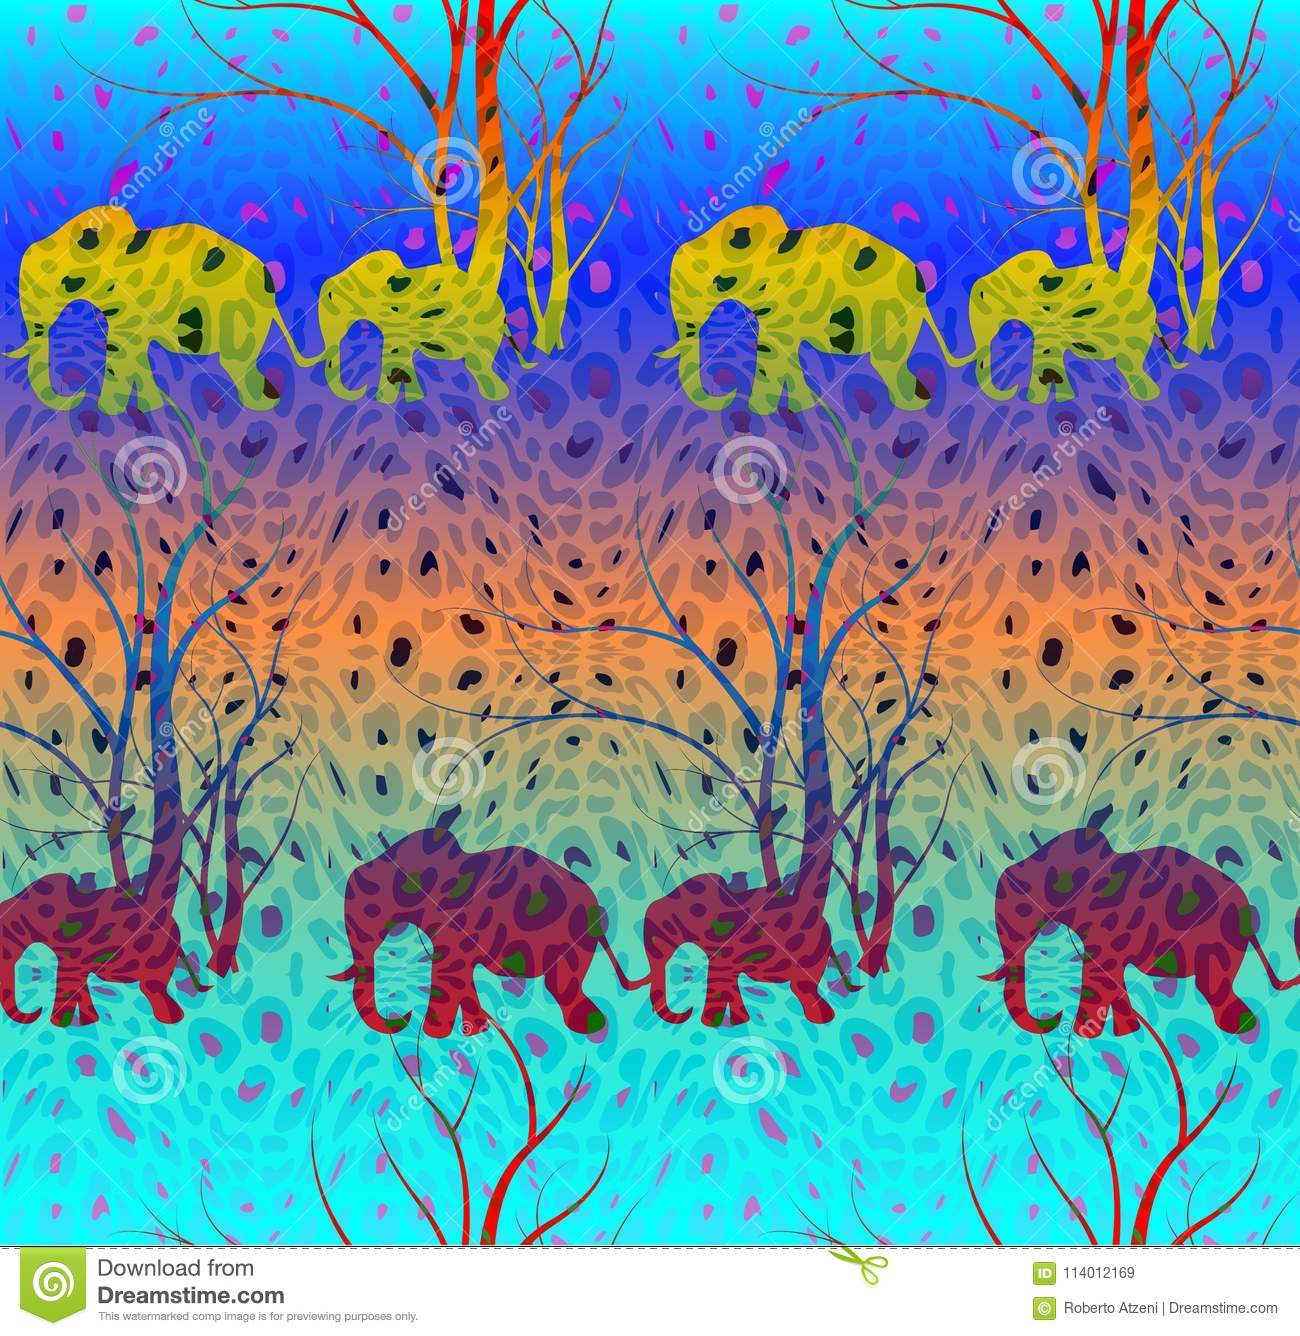 Batik Colorful Pattern With Cute Animal, Elephants. The